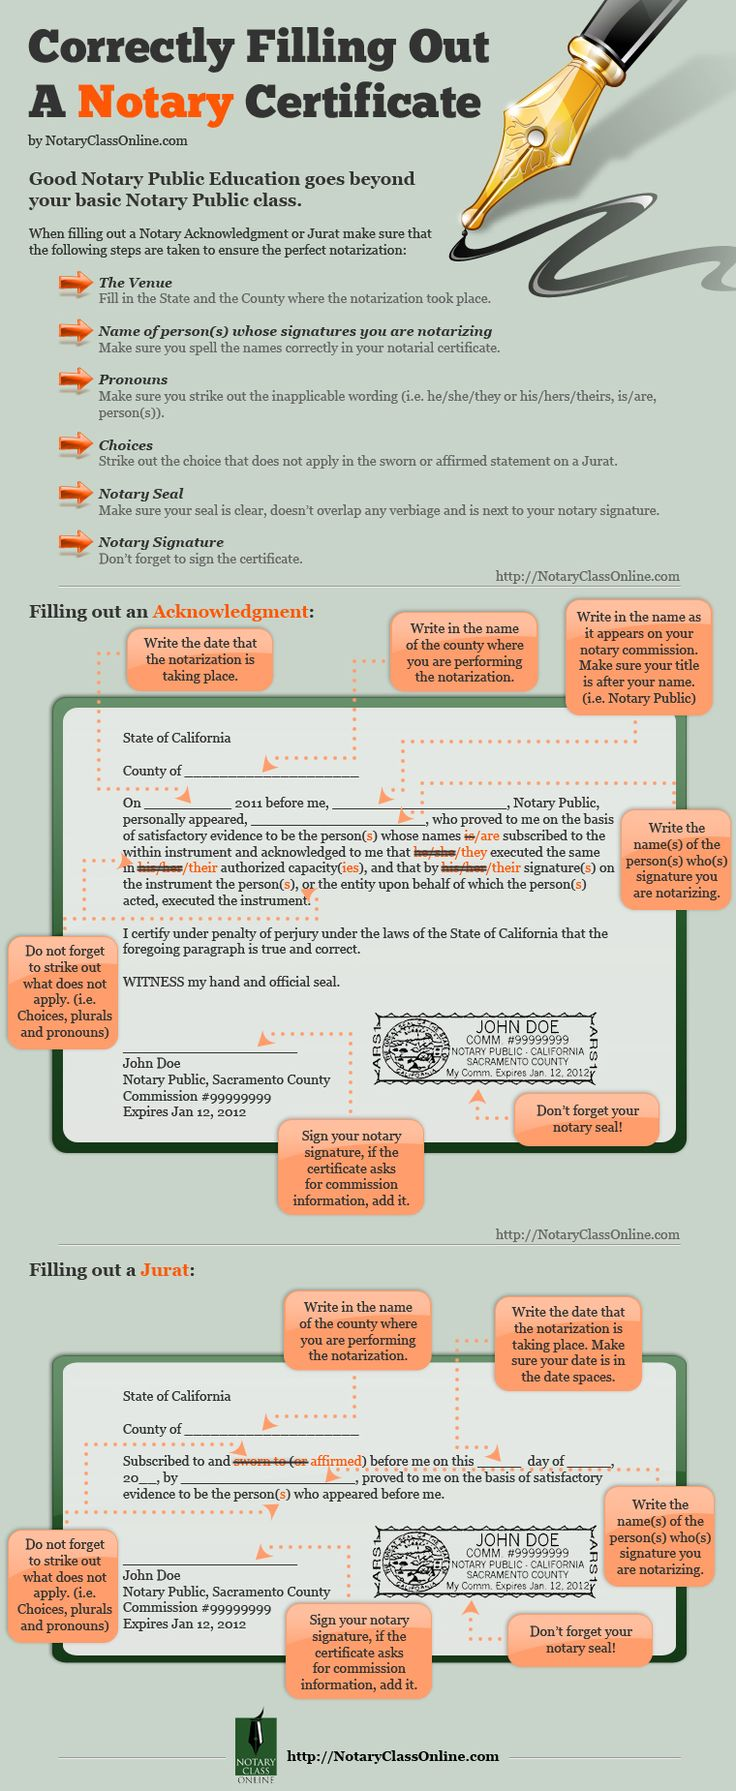 42 best notary public images on pinterest public metro detroit correctly filling out a notary certificate infographic publicscrutiny Gallery